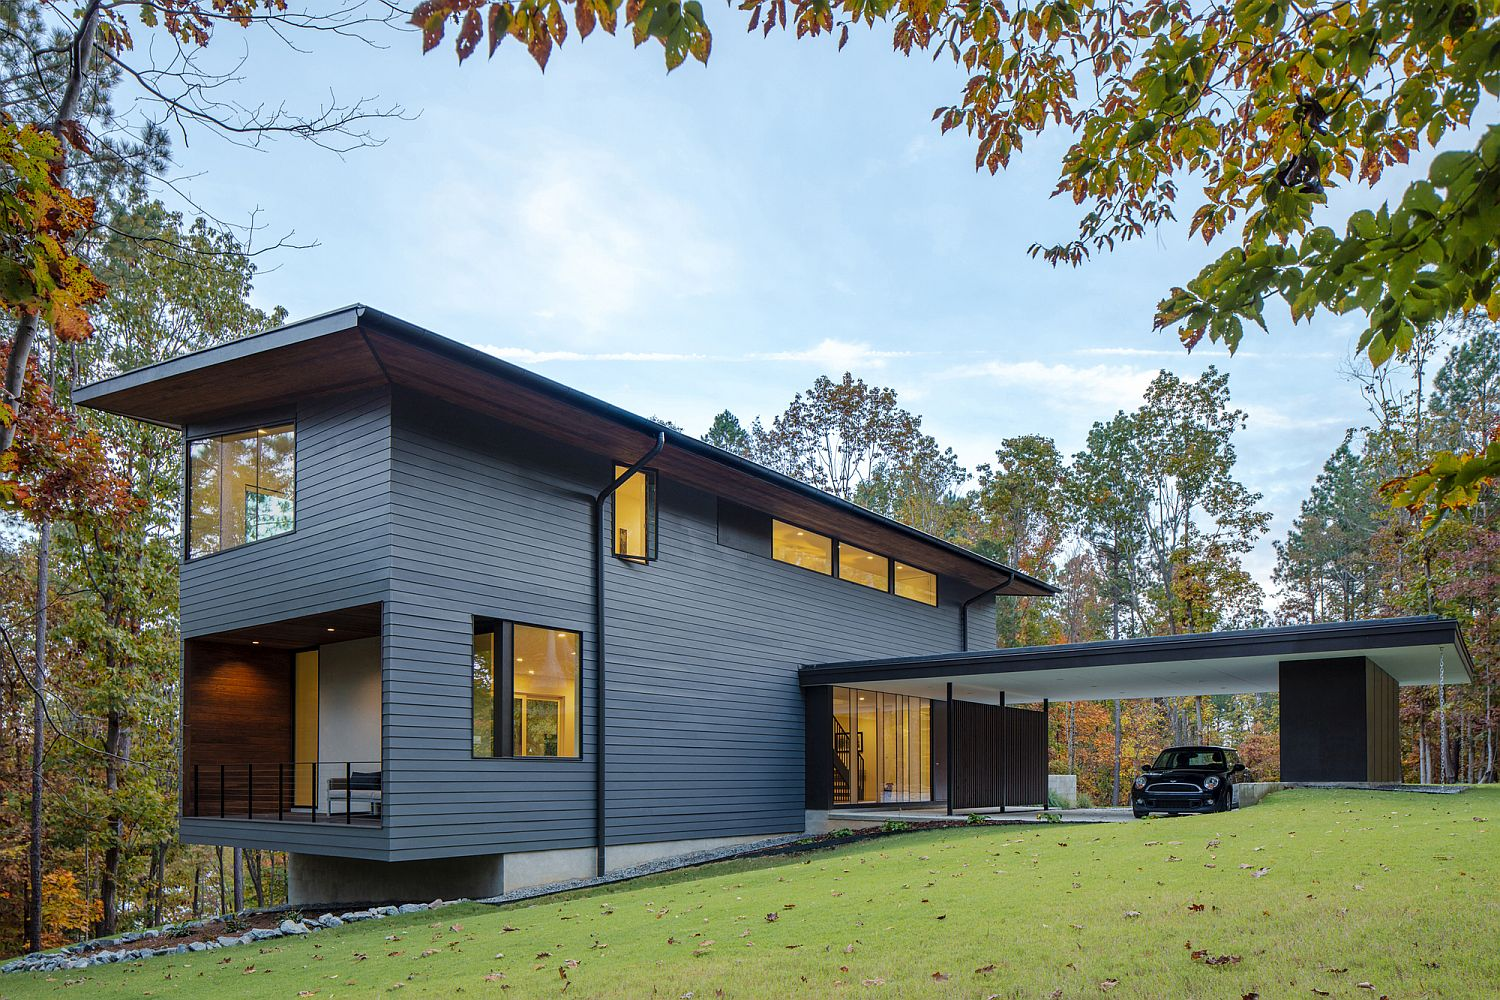 Gorgeous gray exterior and straight lines accentuate the contemporary appeal of the house